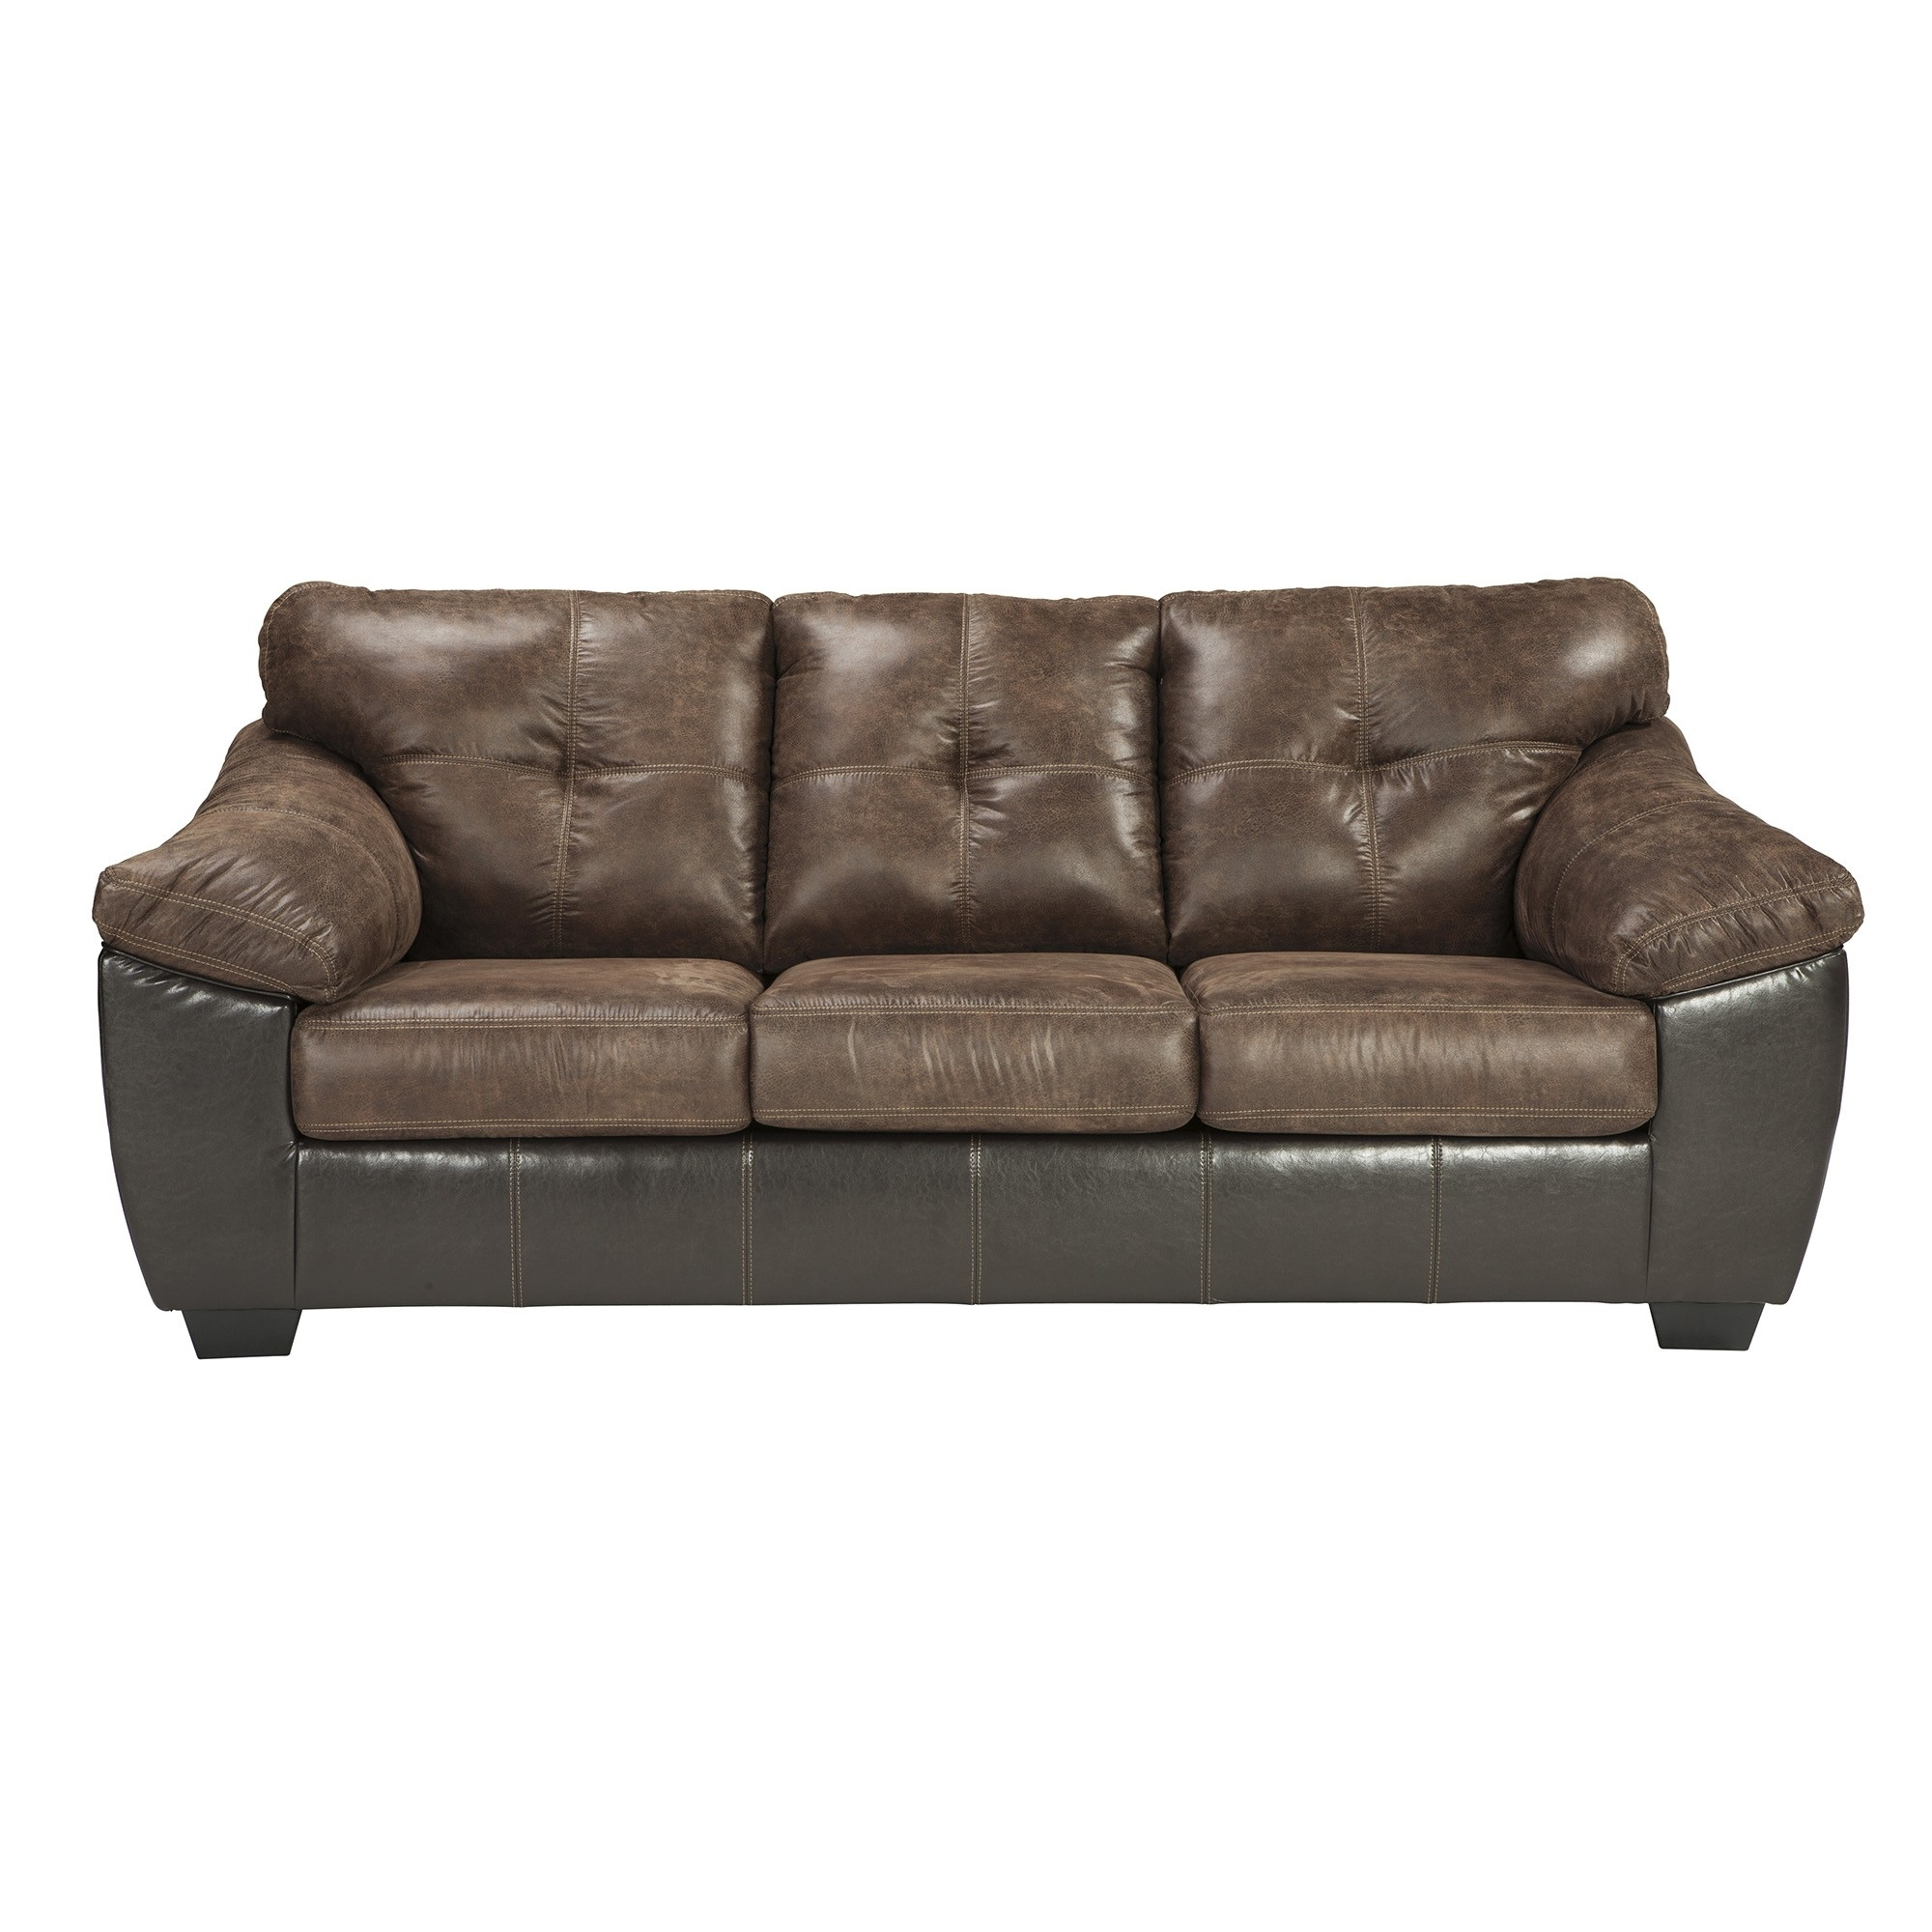 Welcome To Tepperman's Since 1925 | Tepperman's With Teppermans Sectional Sofas (Image 10 of 10)